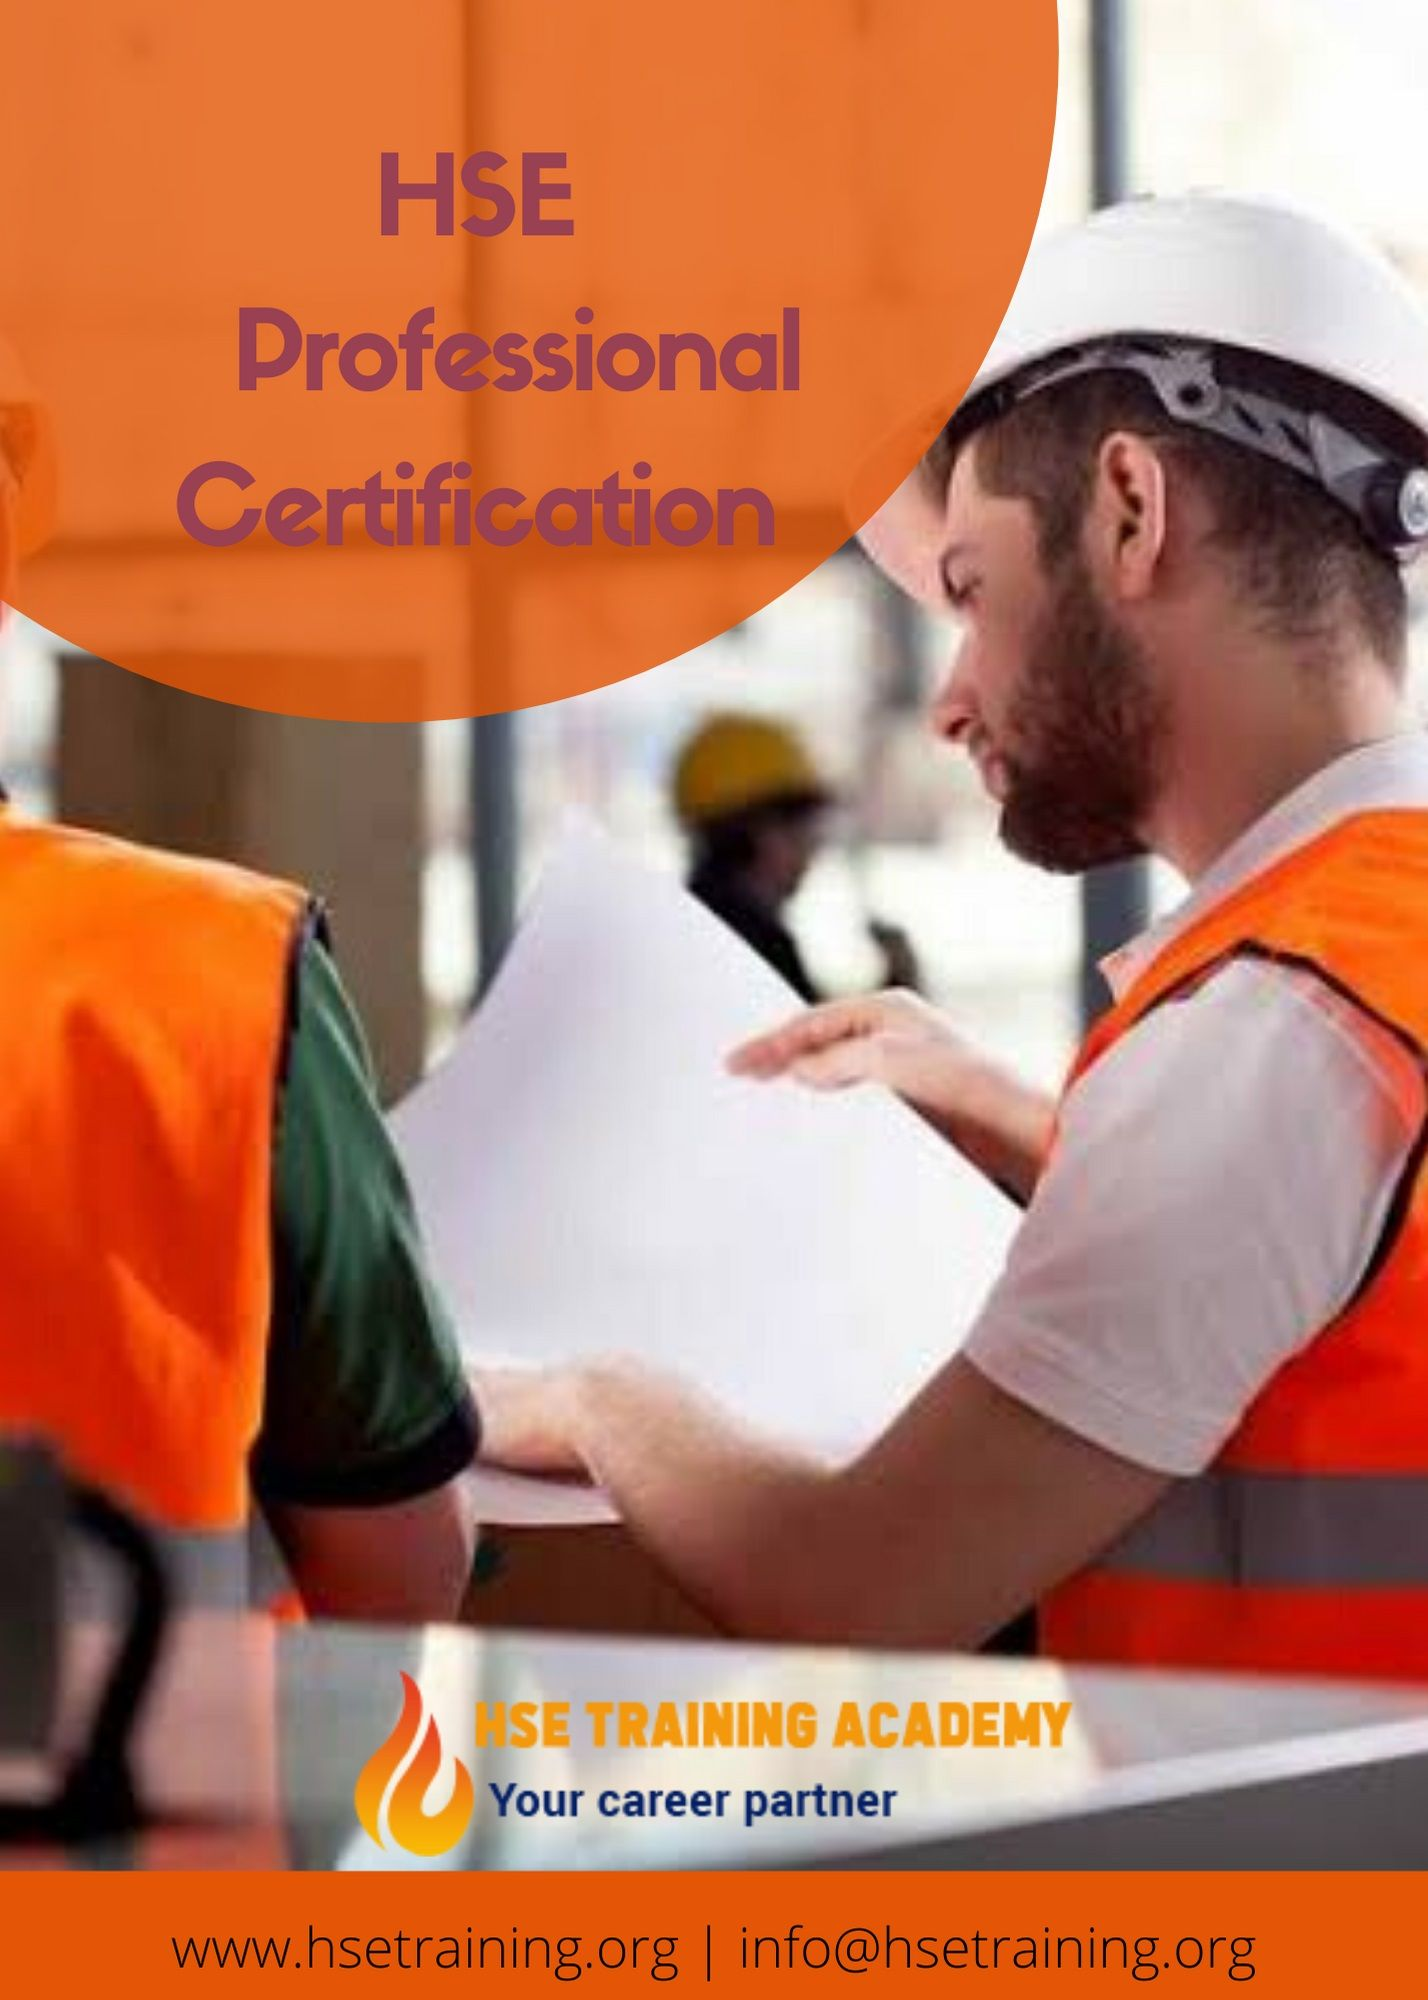 Hse professional certification industrial health and